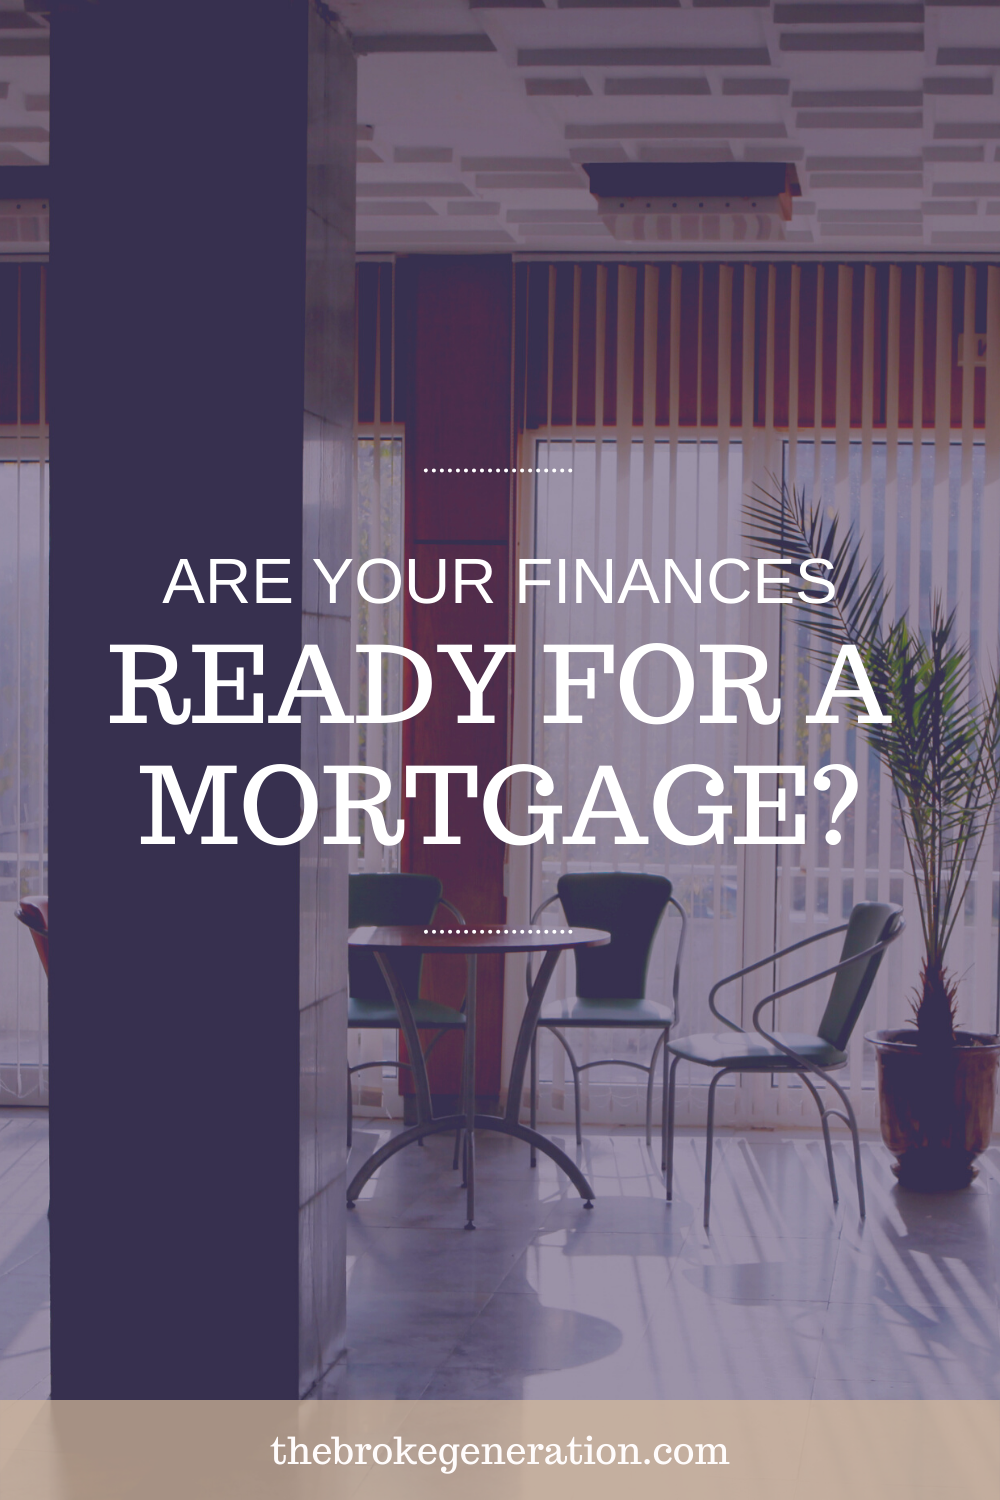 Are Your Finances Ready for a Mortgage